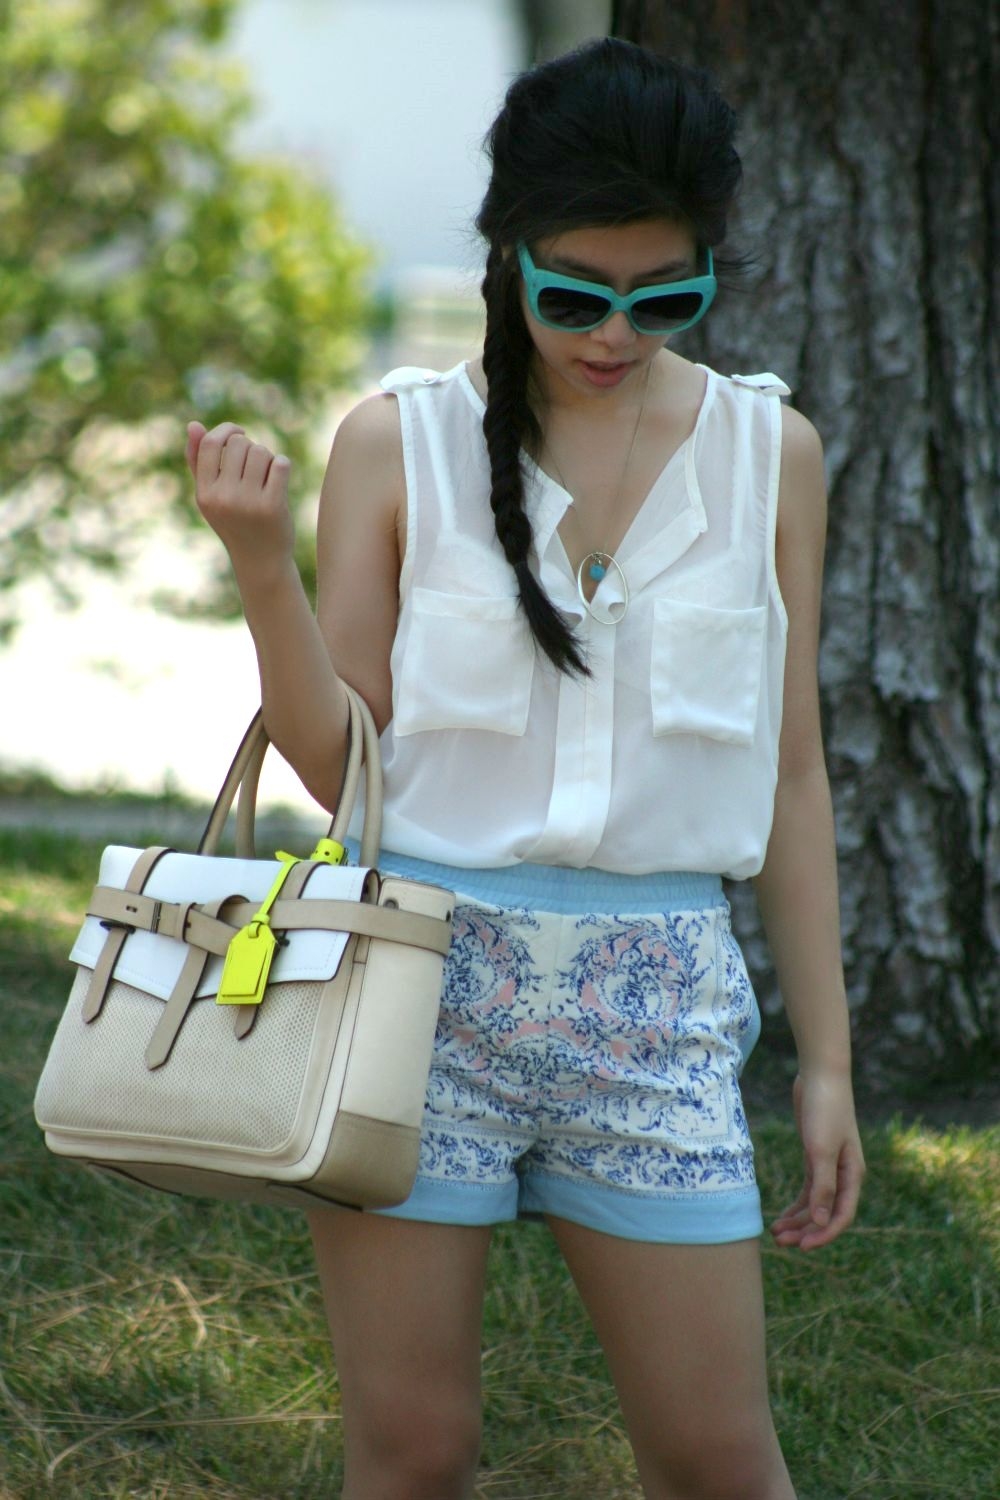 casual summer fashion - sheer white top and shorts with pockets